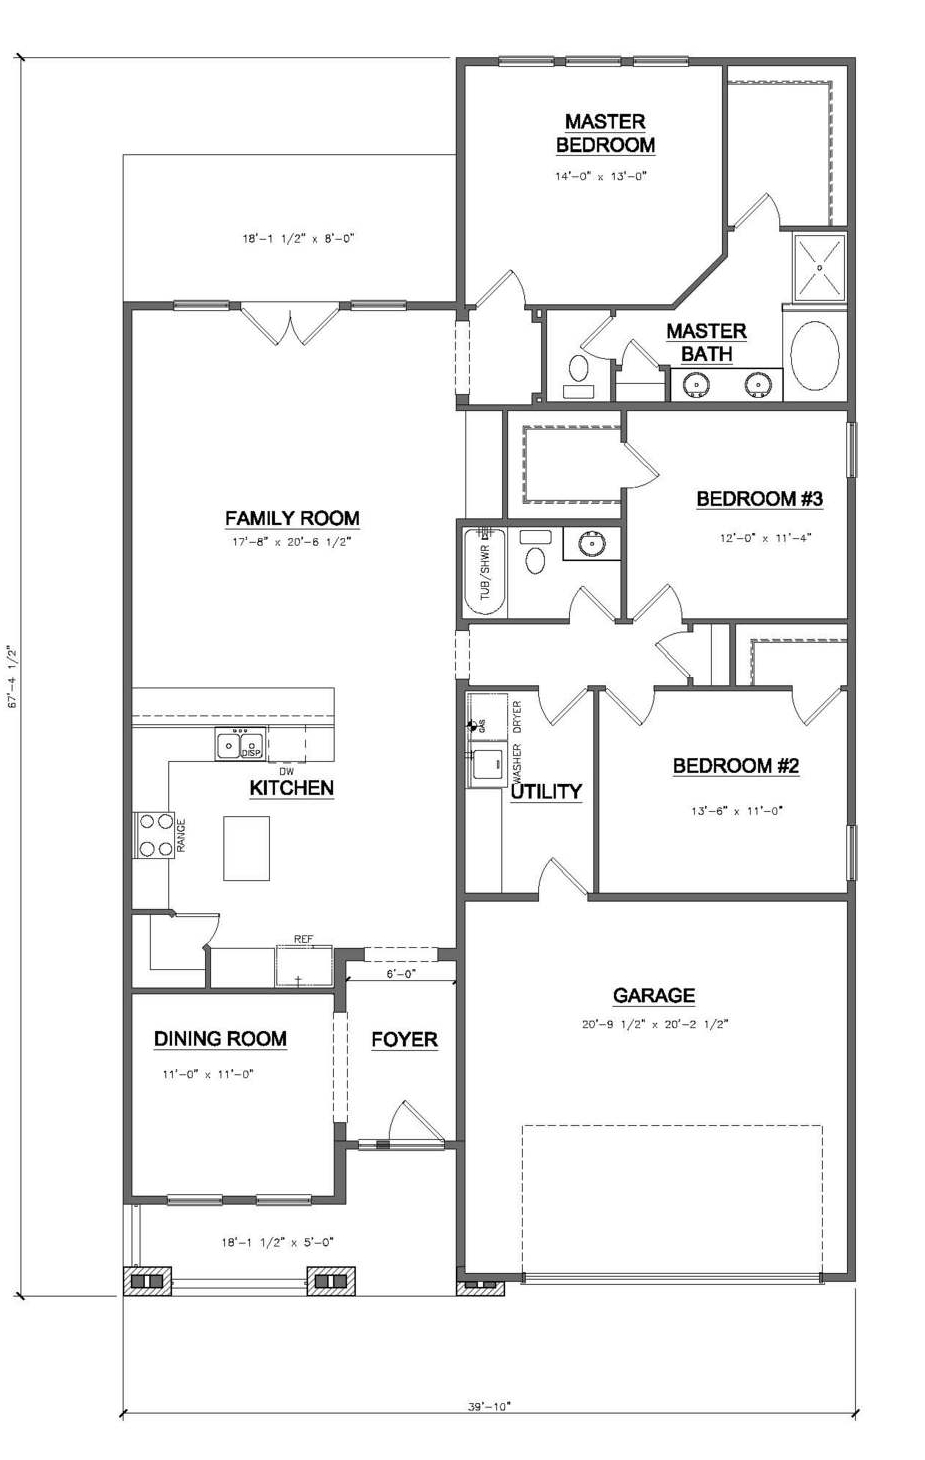 Spec Home #1 04.27.16_Page_1.jpg